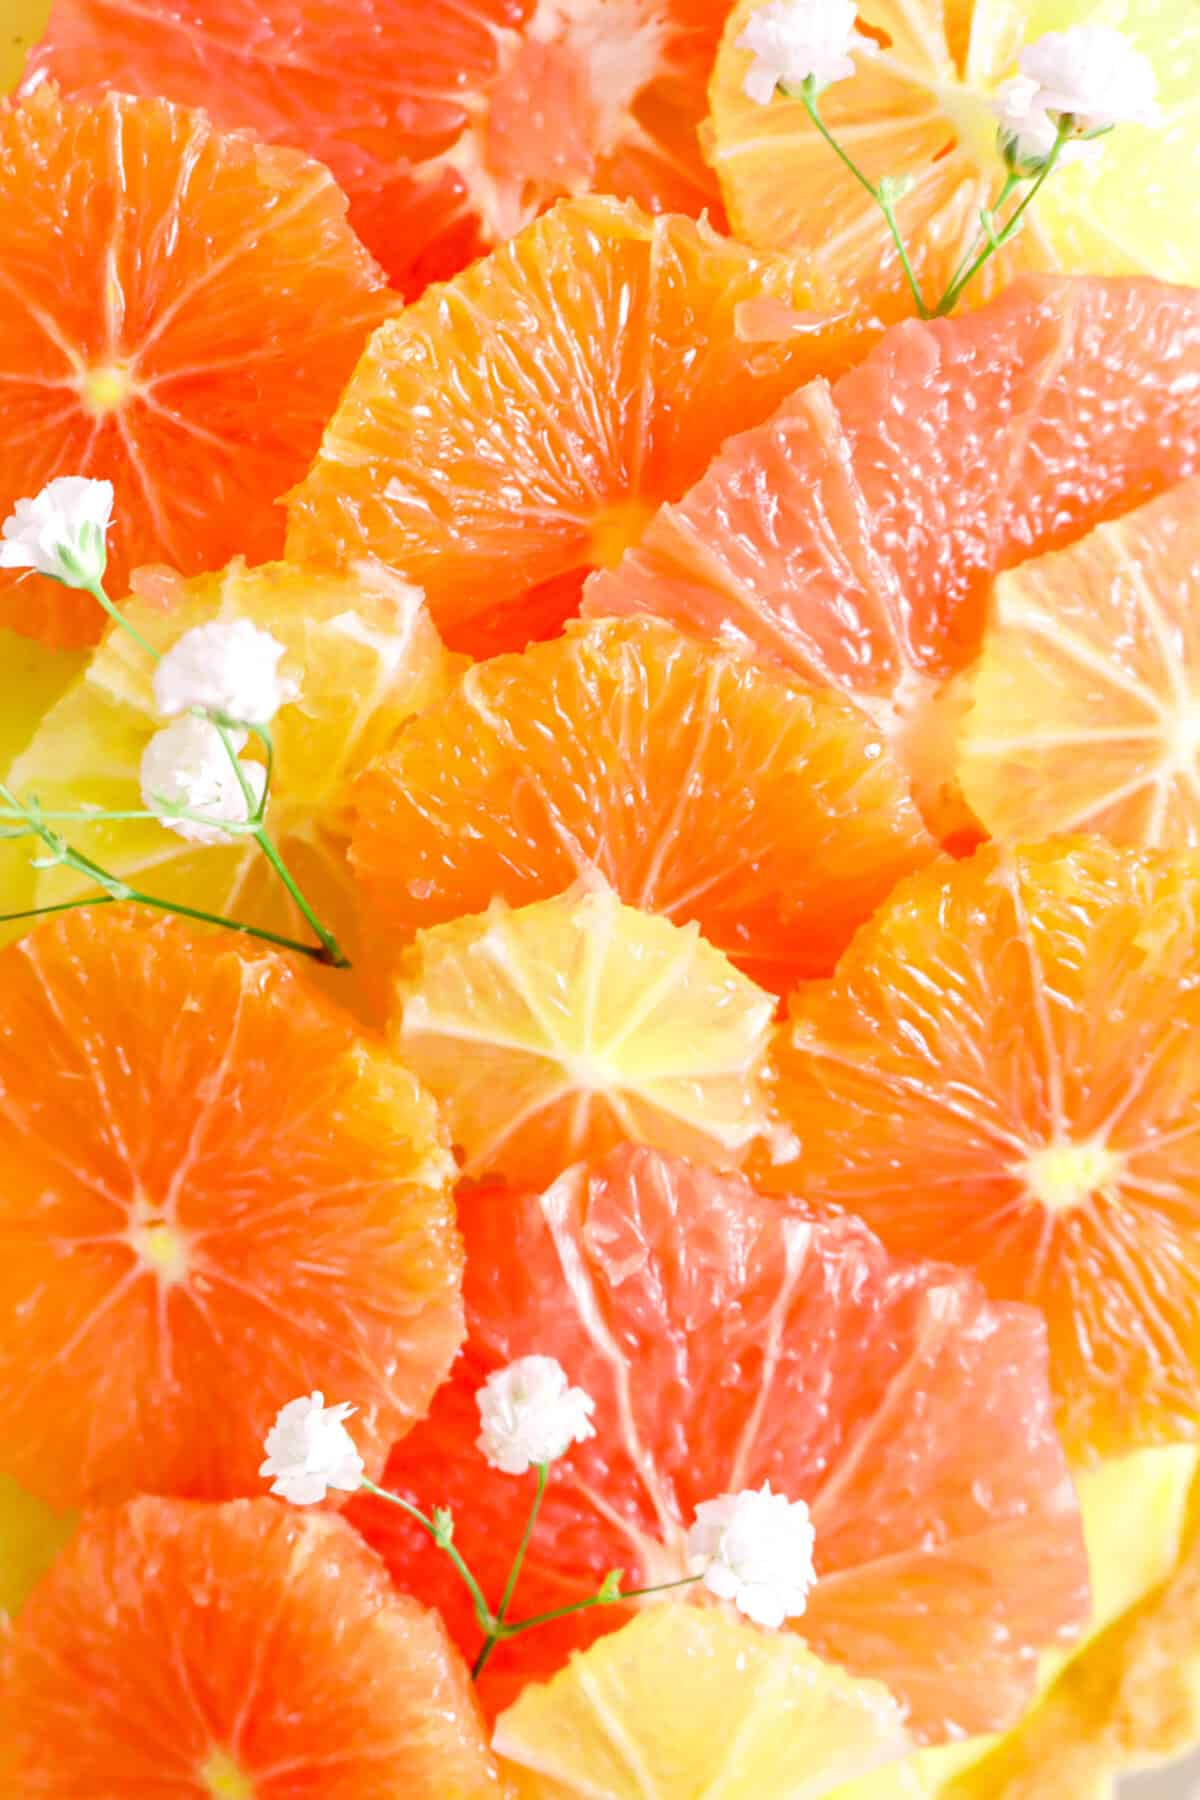 citrus slices with flowers